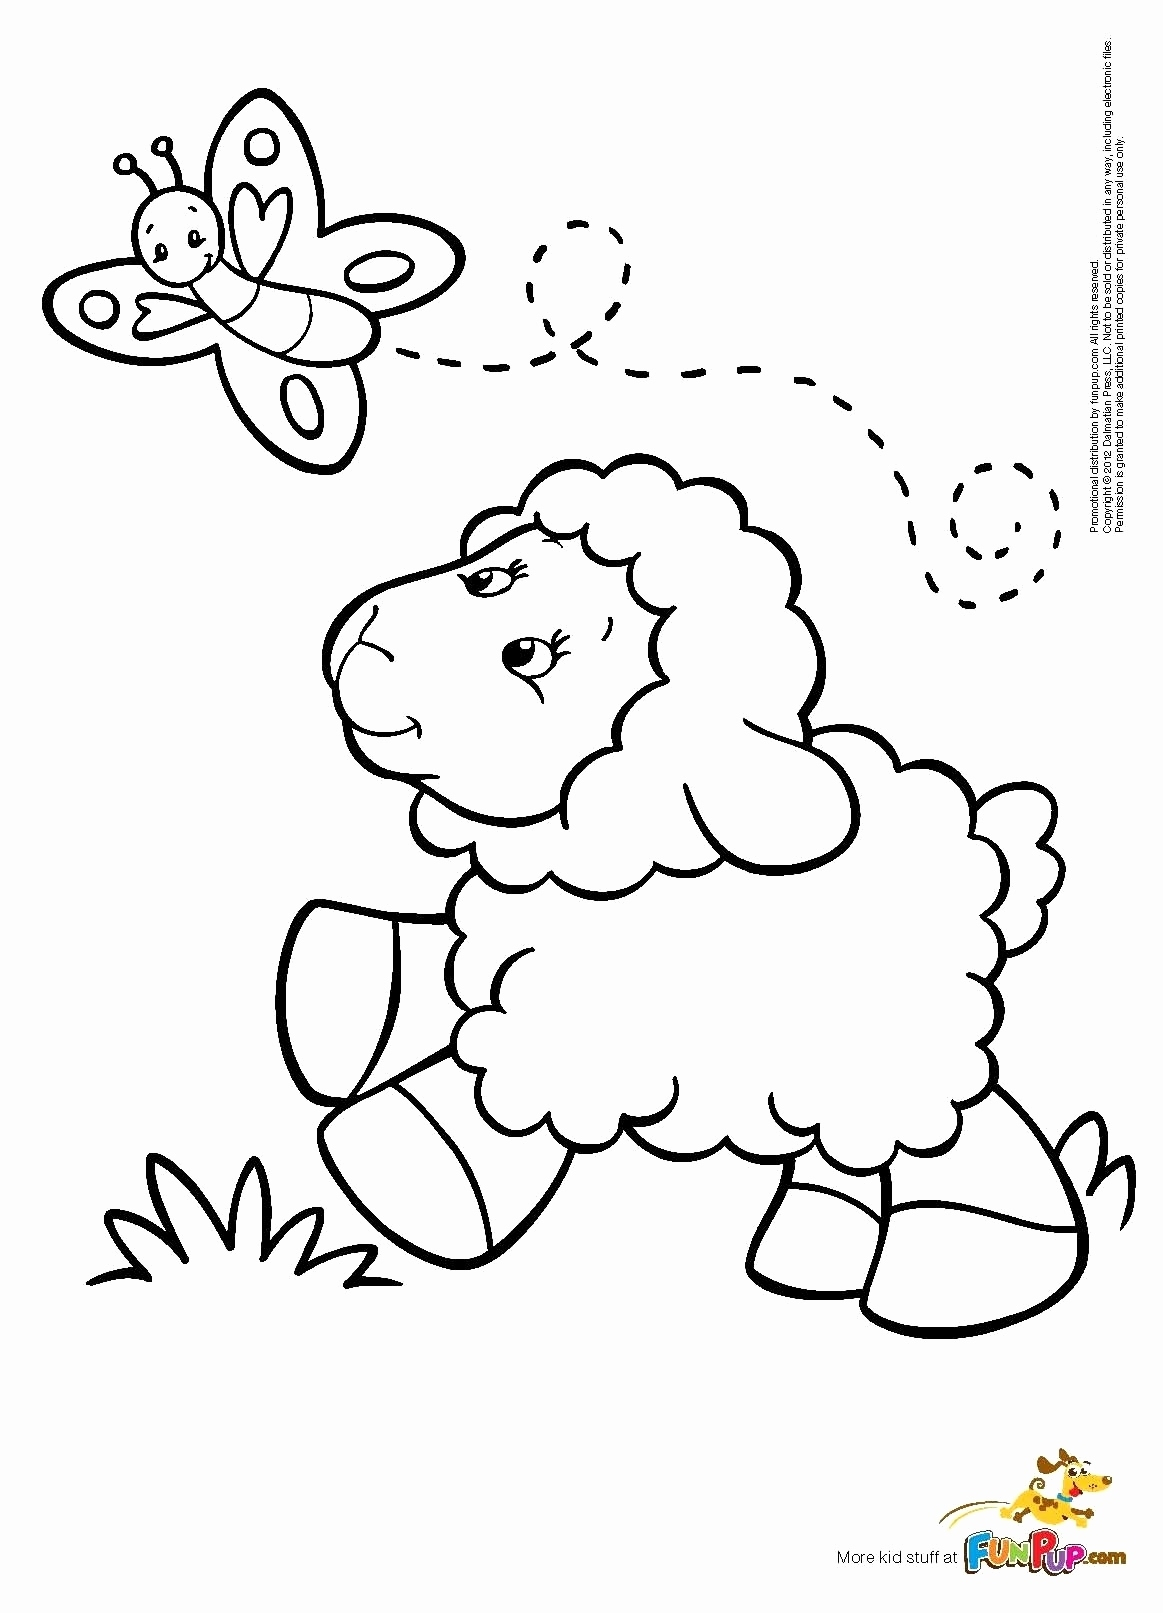 make your own coloring pages for free Collection-Printable Make Your Own Coloring Pages Fresh Cool How to Draw Tree Coloring Pages Unique 8-f